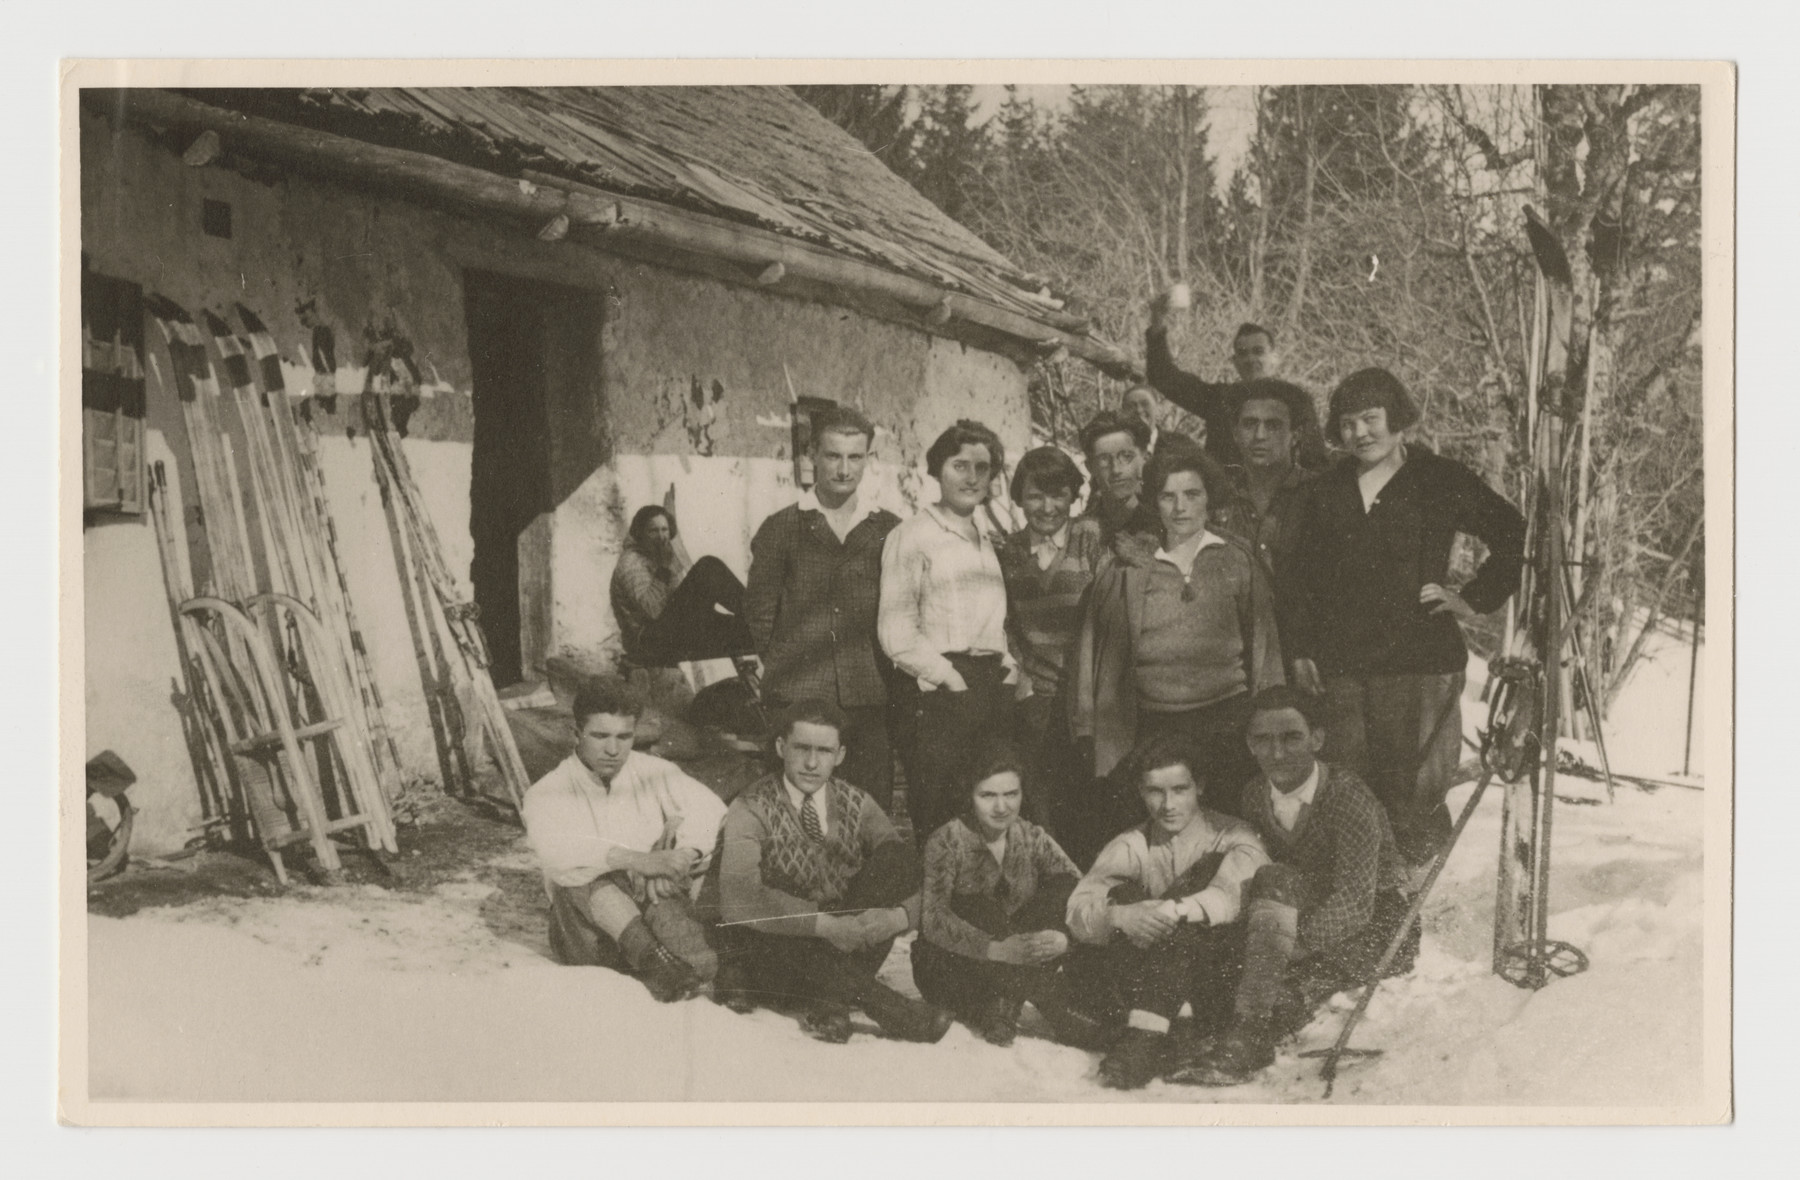 Klara Taussig (standing second from left) poses in the snow with other young people at an Austrian ski race, March 1929.